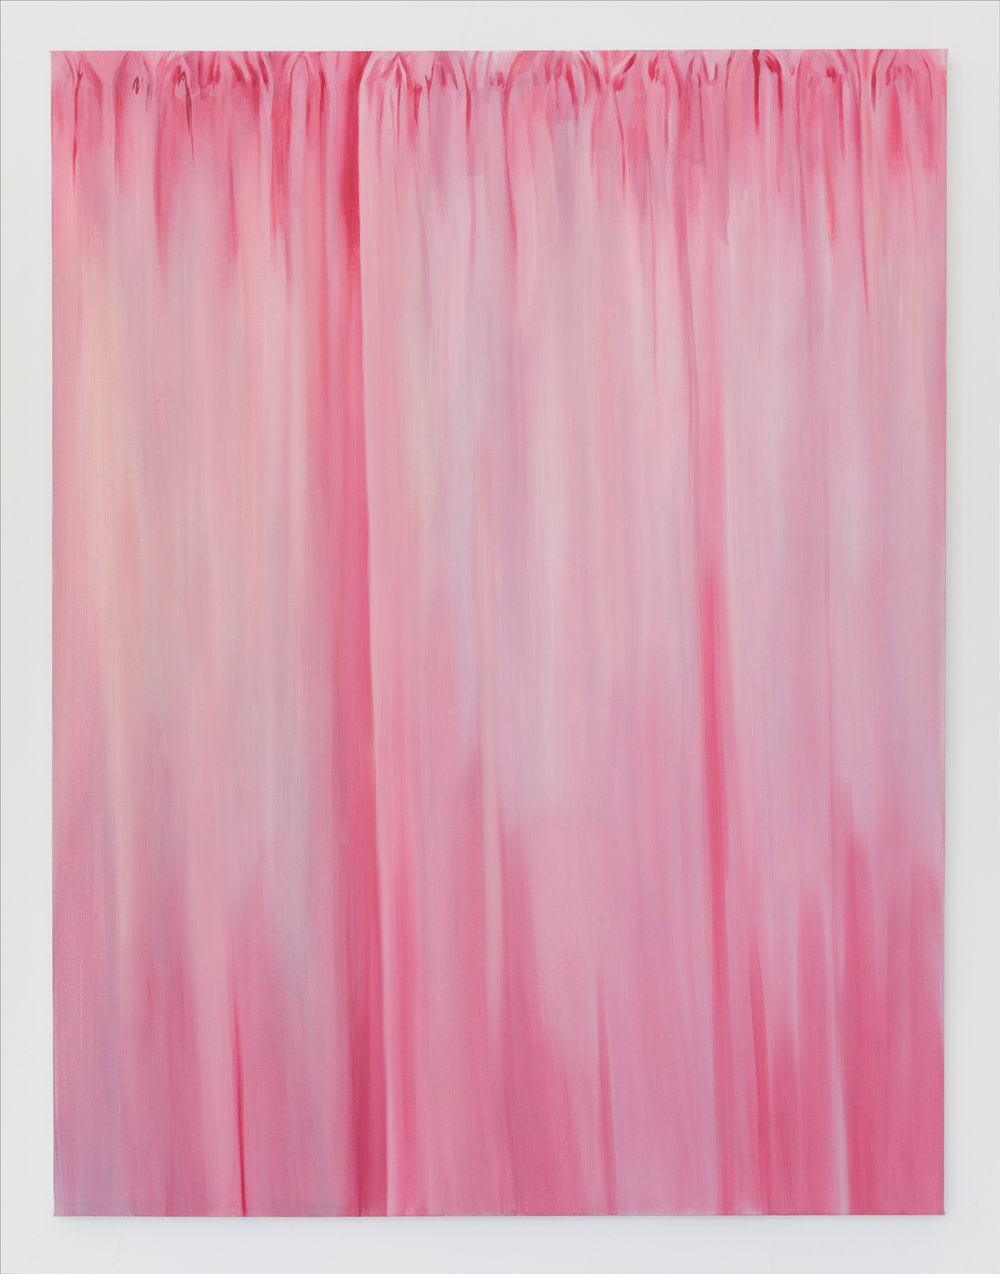 Aglae Bassens, Pink Curtains